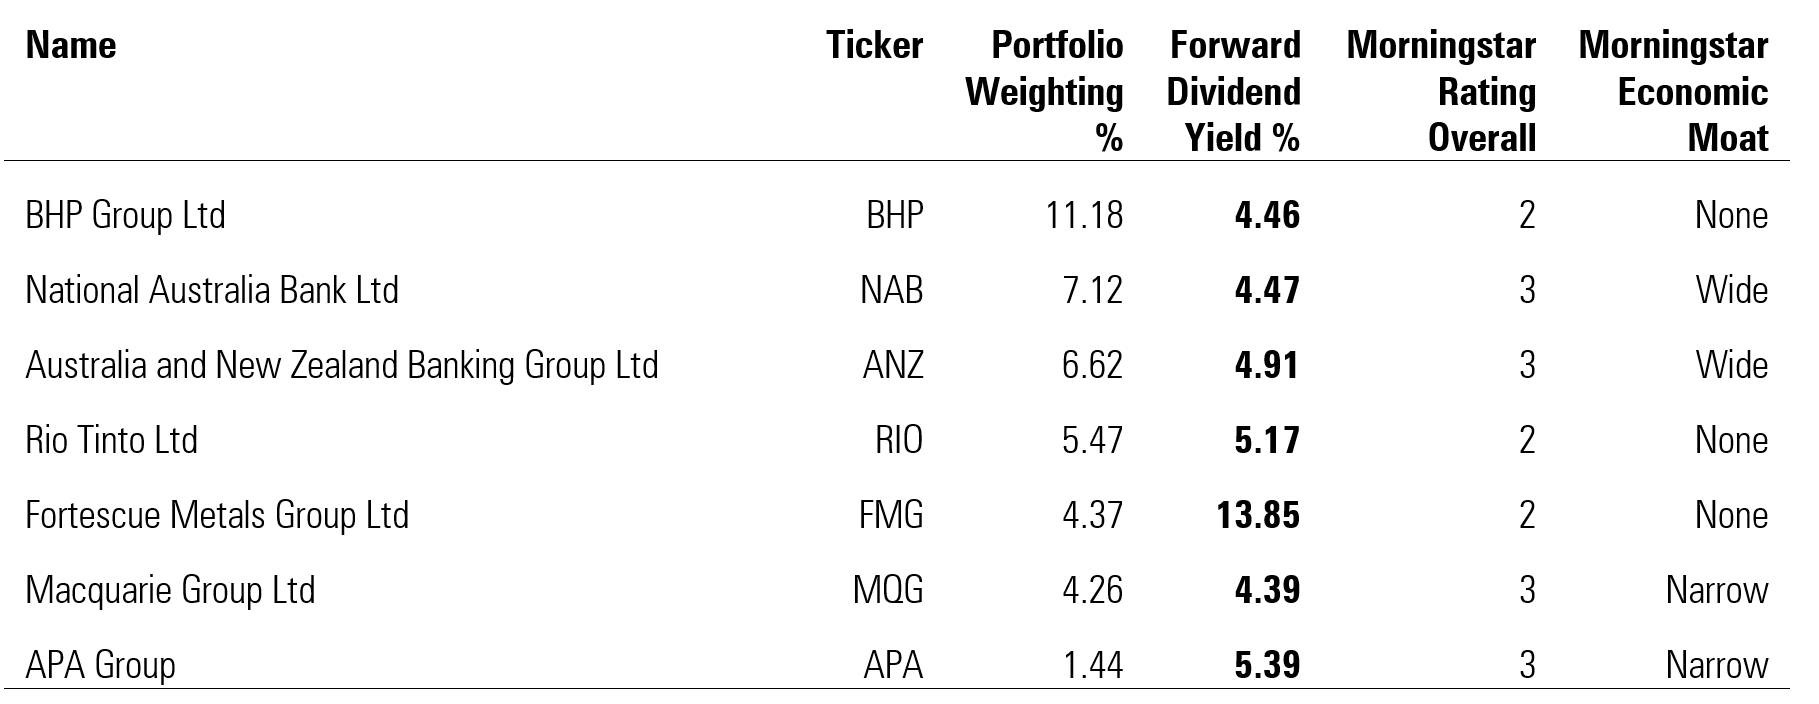 Seven of the top 15 holdings have a forward dividend yield greater than 4